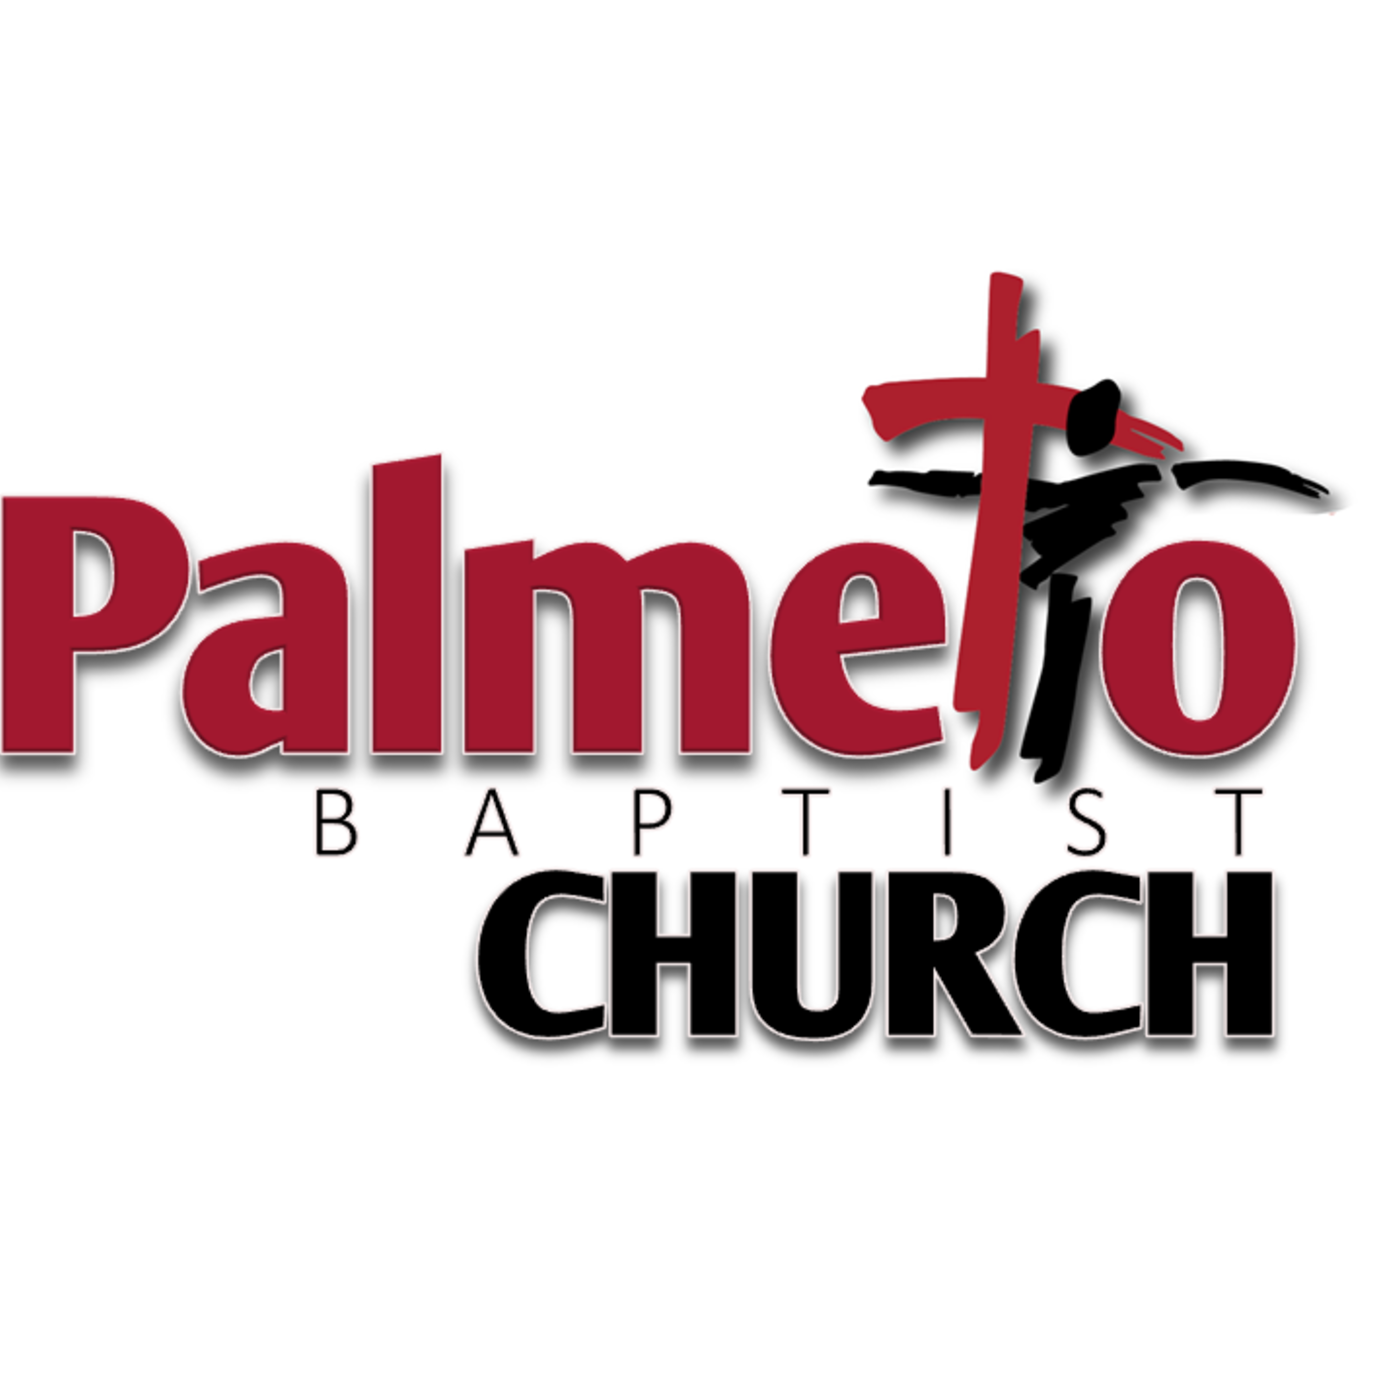 Palmetto Baptist Church, Palmetto, GA